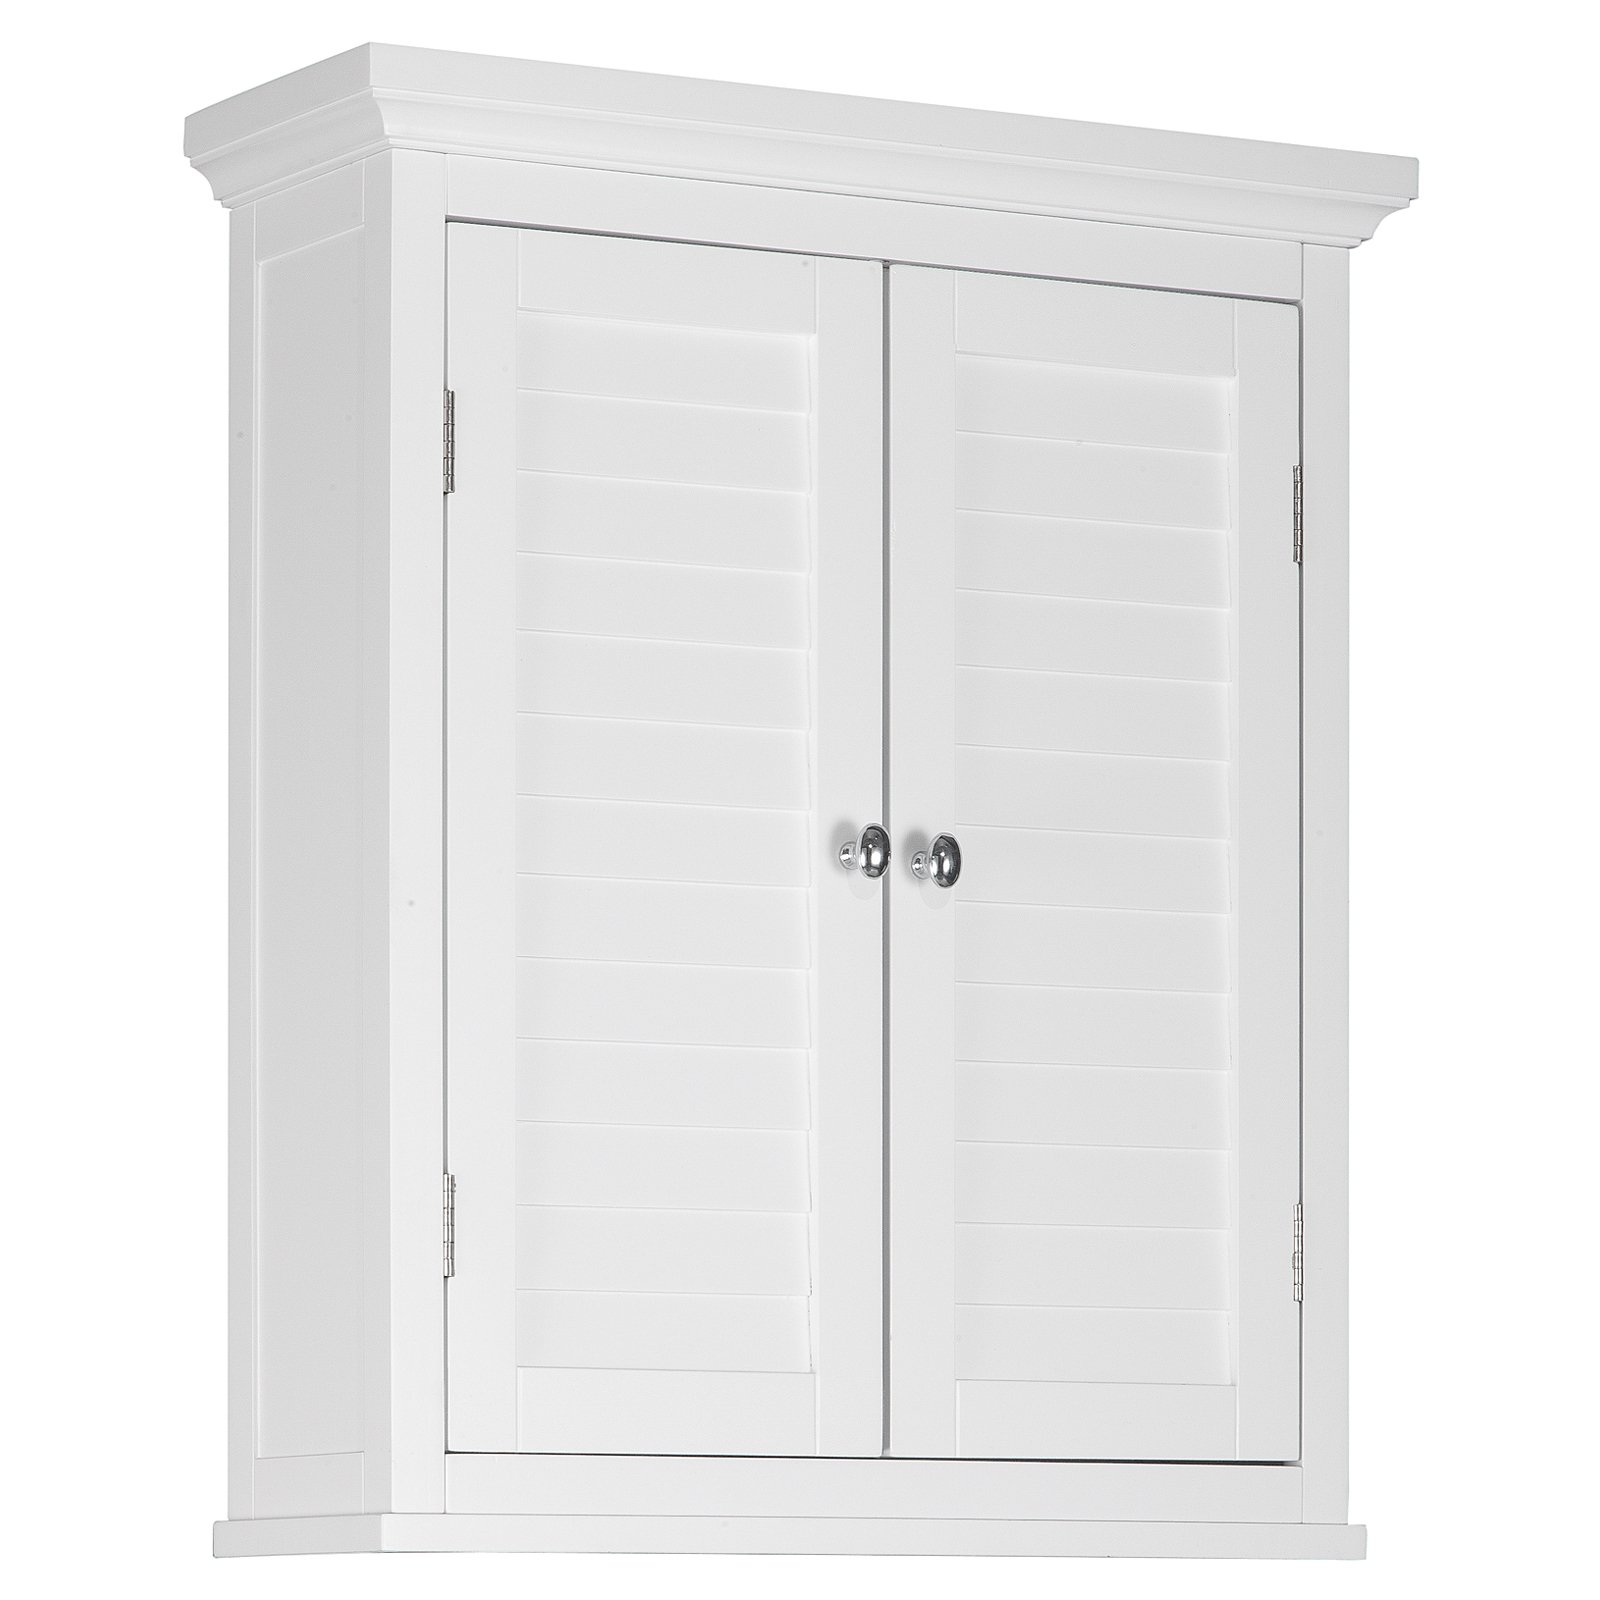 Attractive Elegant Home Fashions Sicily Wall Cabinet 2 Shutter Doors, White